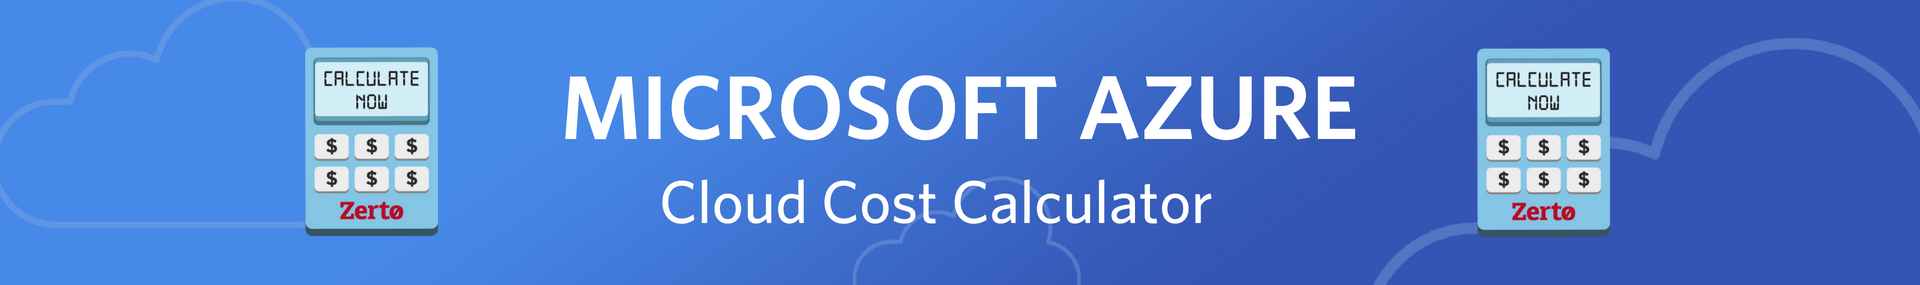 Azure Calculator | Zerto